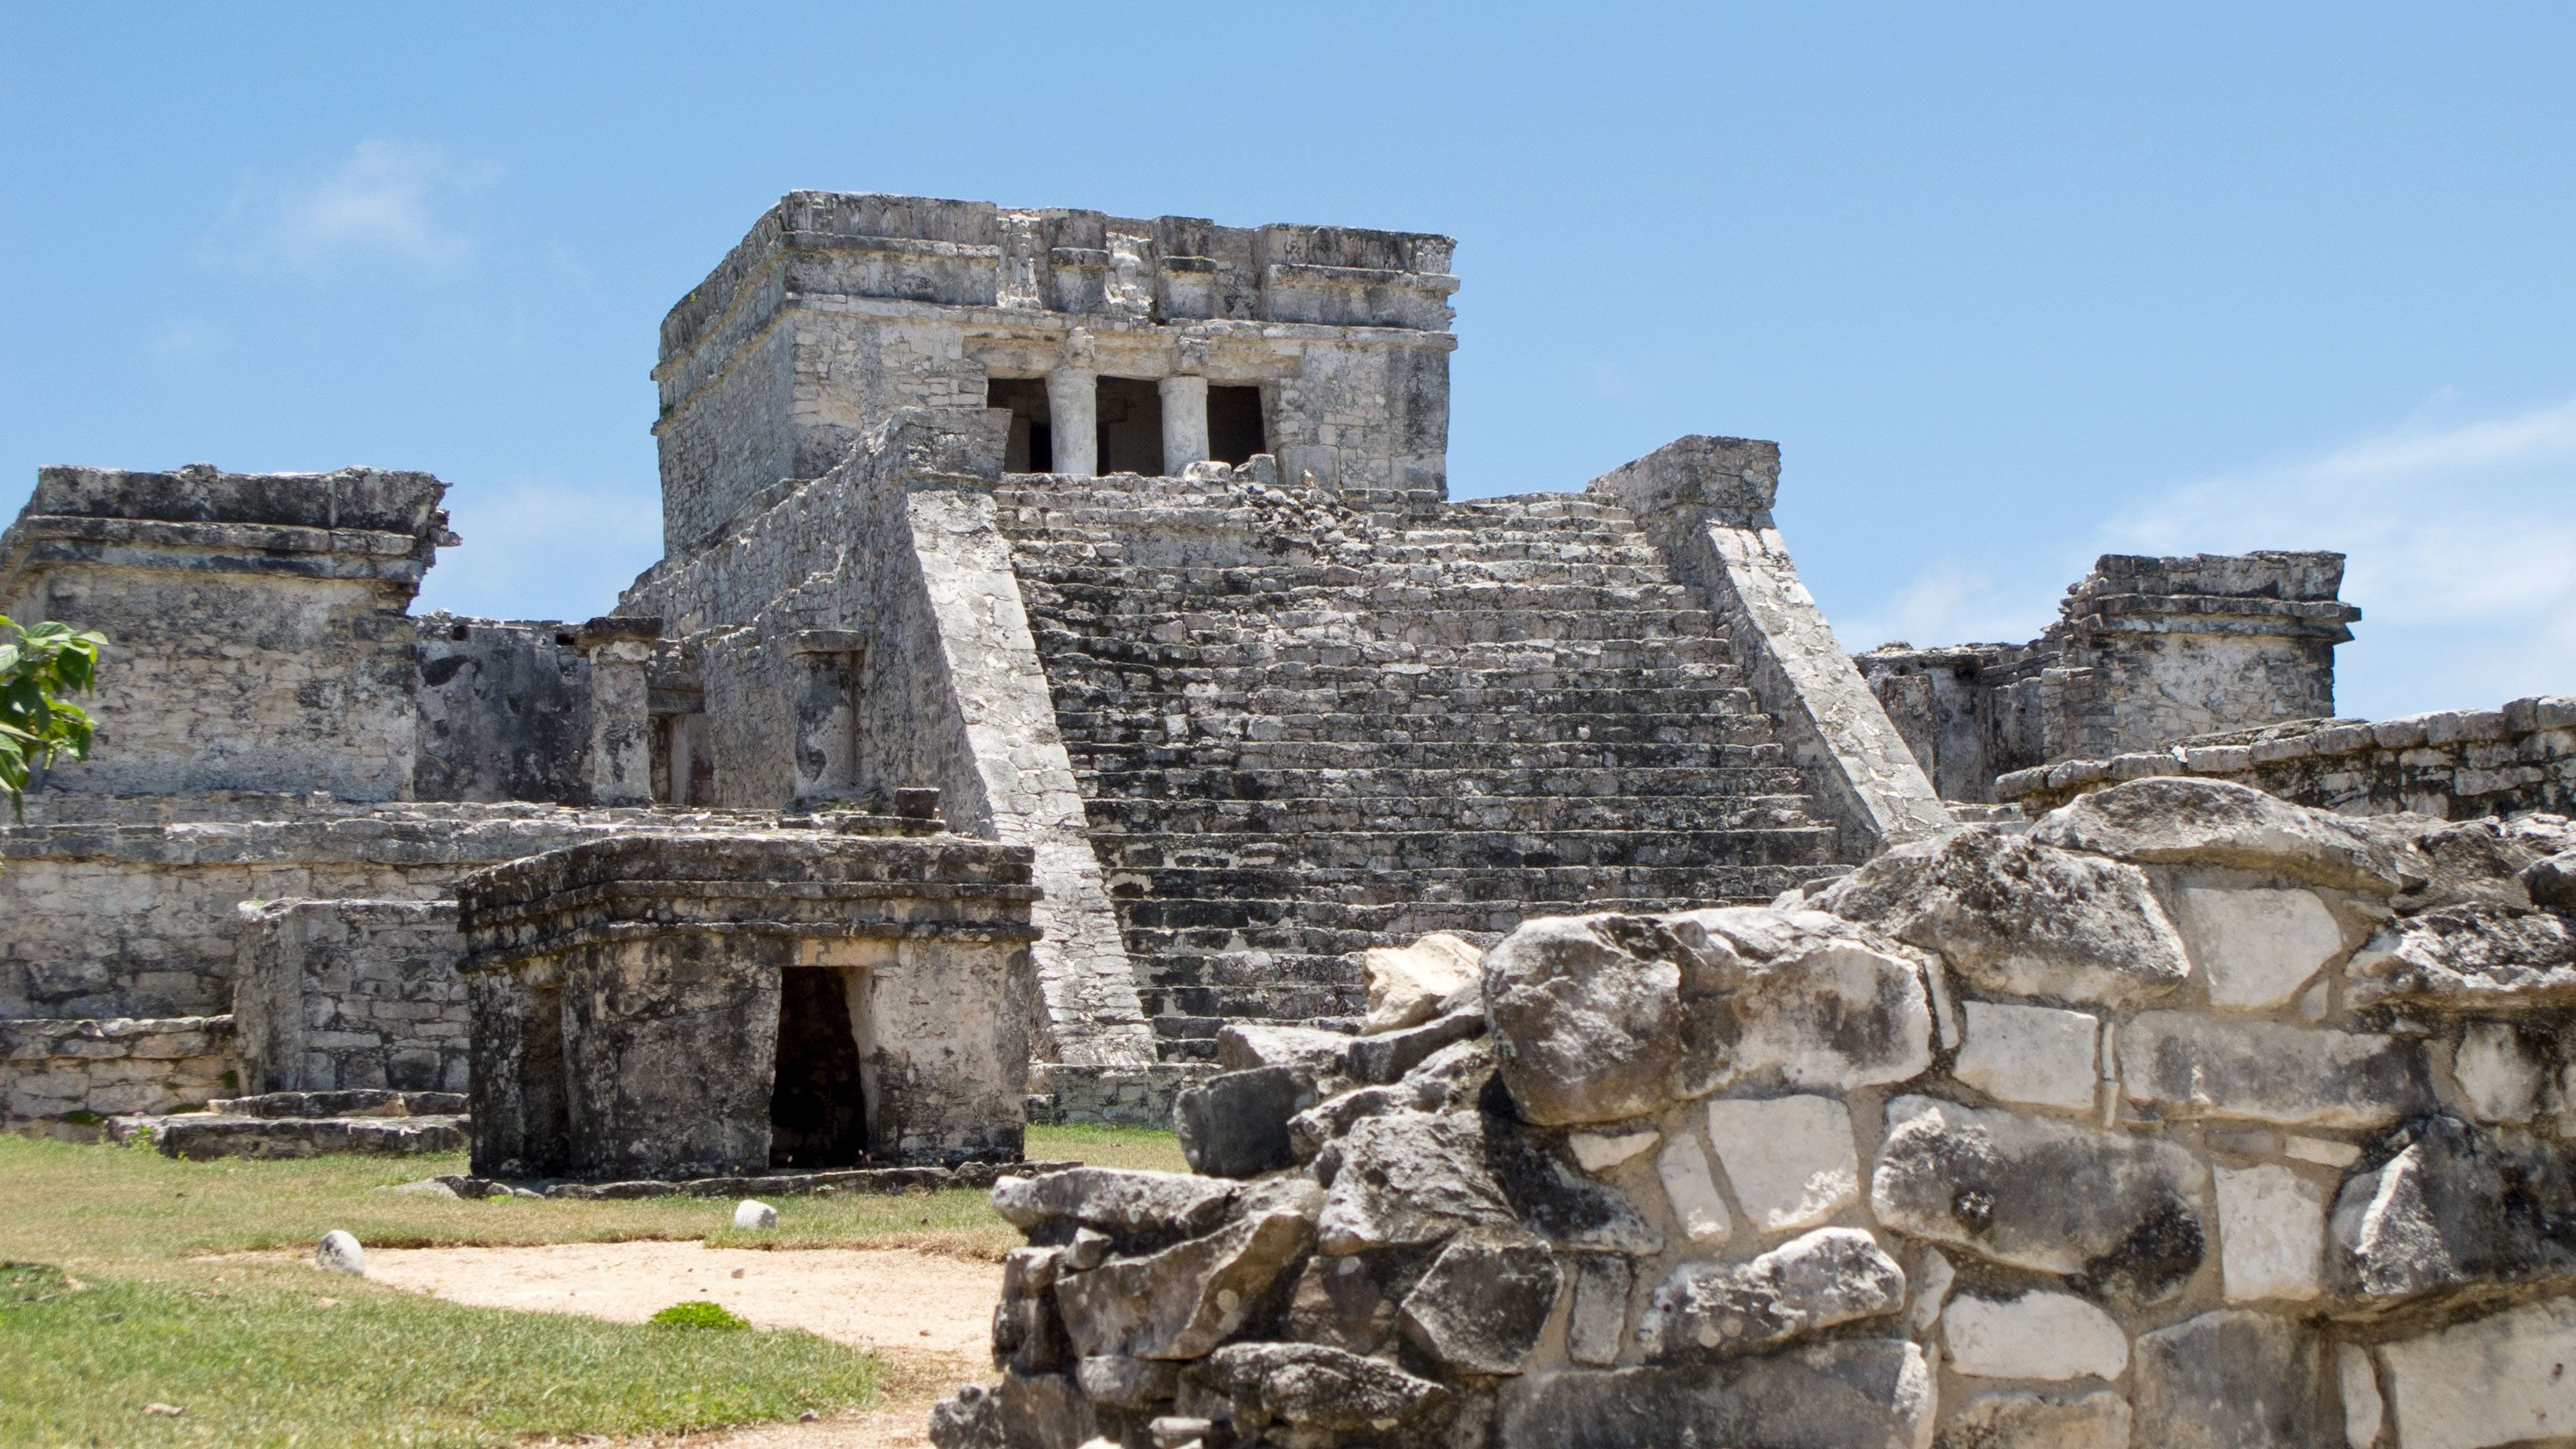 Ruins of a temple in Tulum